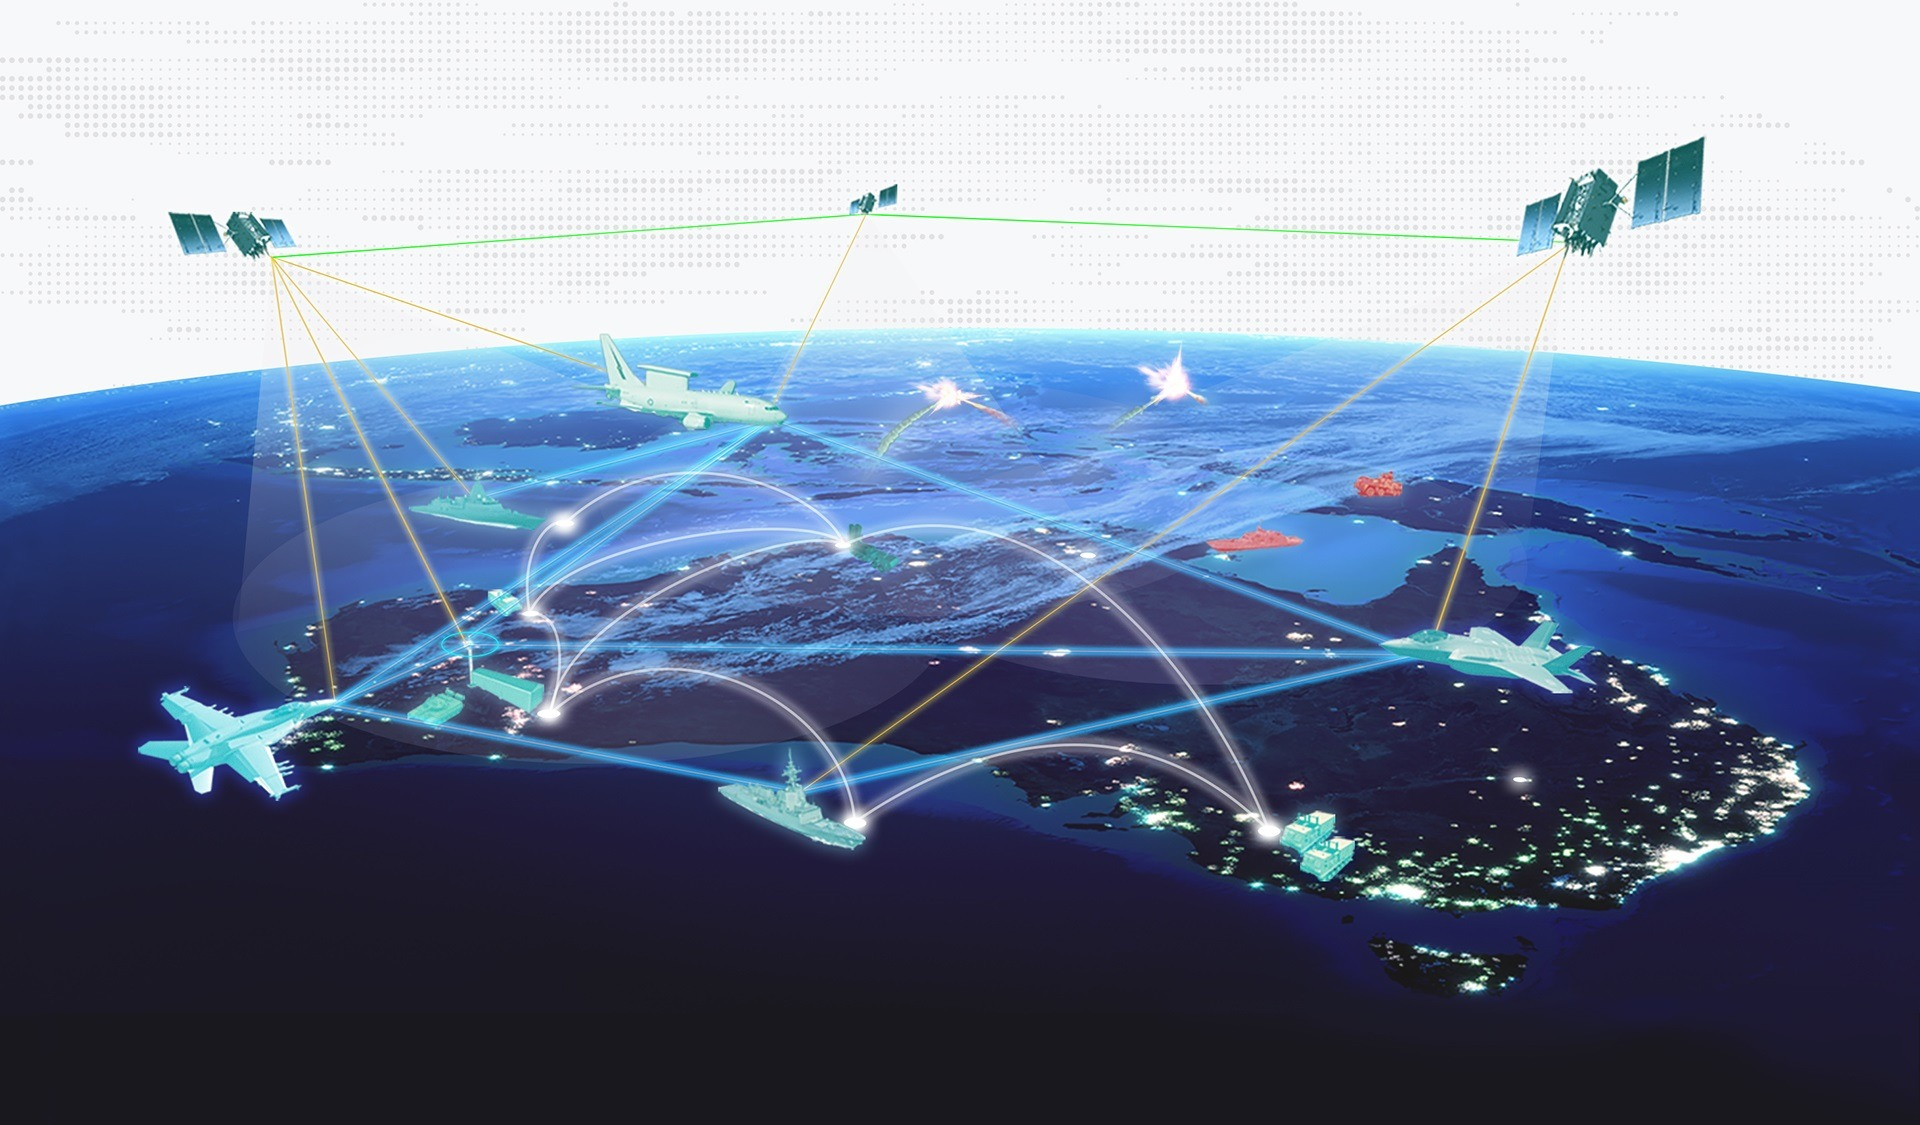 Royal Australian Air Force Awards Lockheed Martin Australia to Develop Joint Air Battle Management System